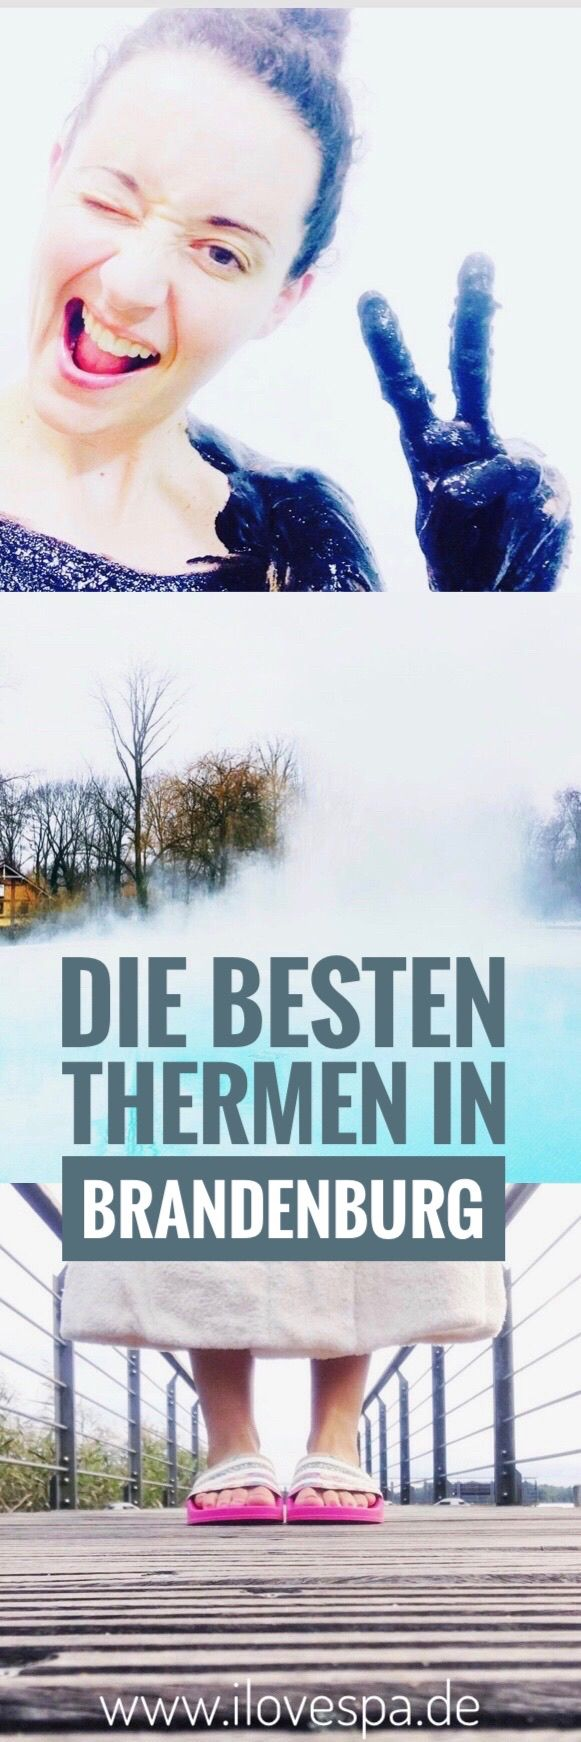 Spa & Wellness in Brandenburg - die besten Thermen in Brandenburg